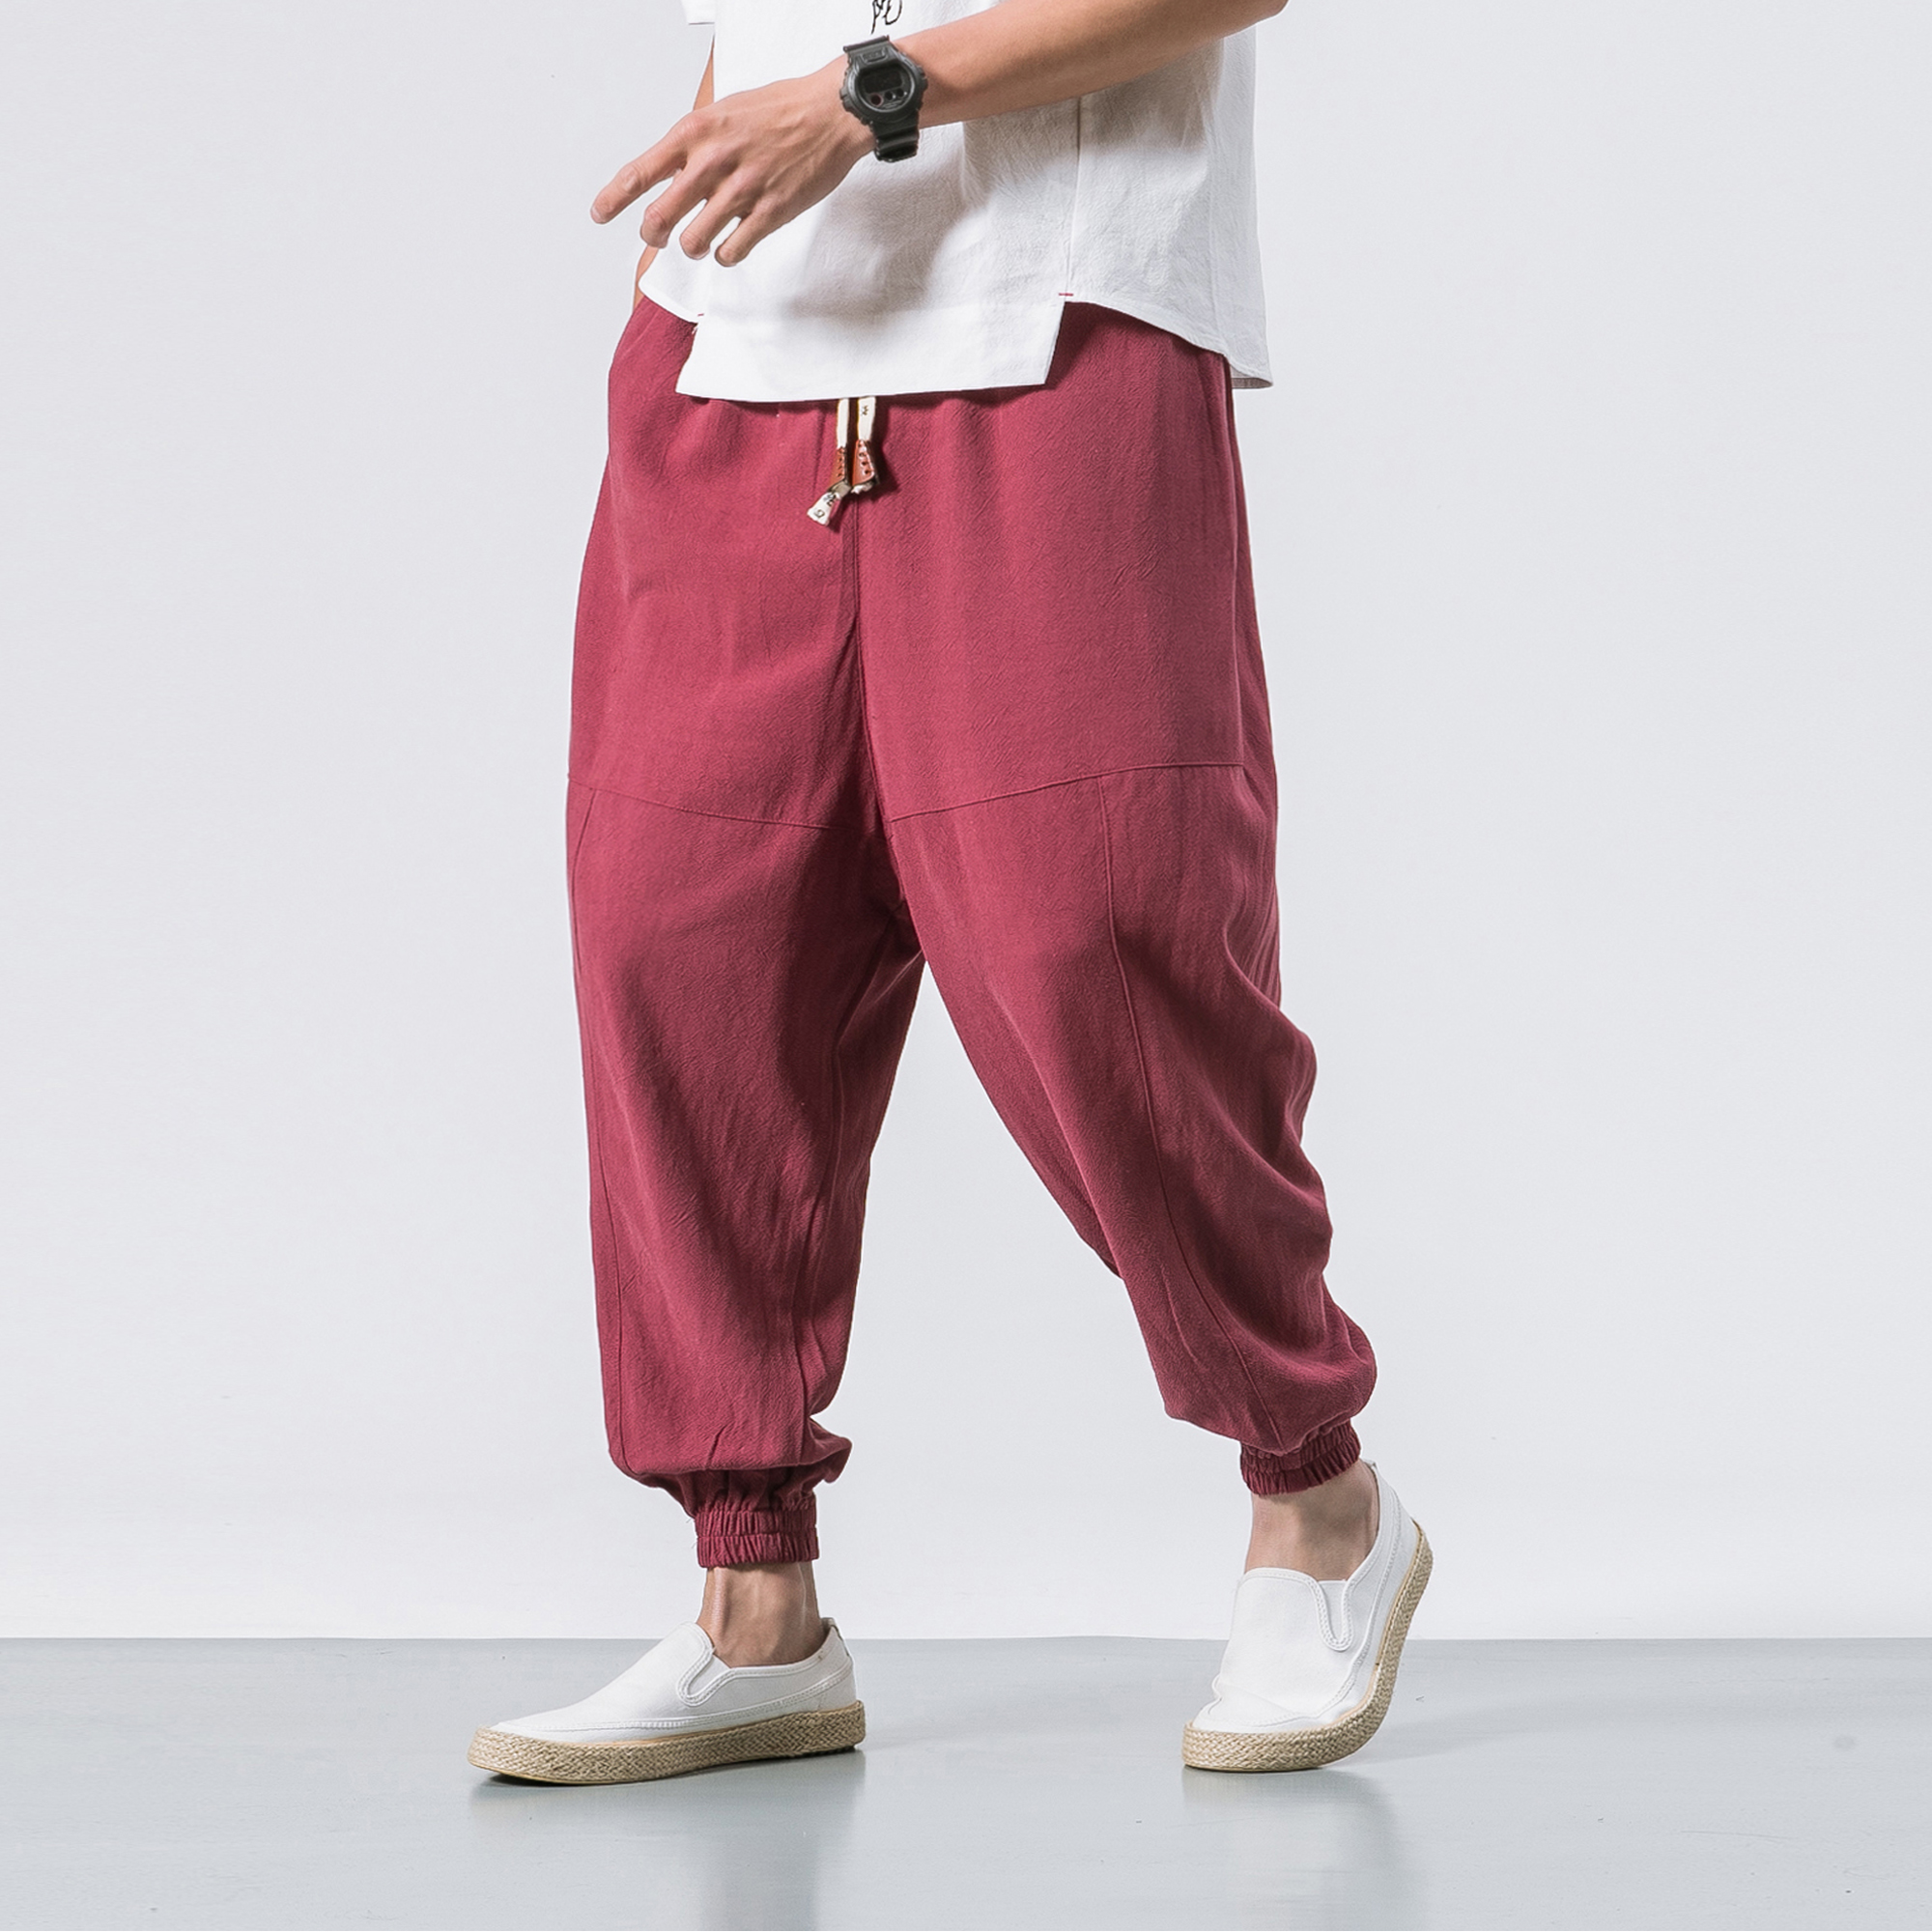 New Japanese Style High Quality Linen Loose Feet Pants Large Size Fashion Men's Black Harem Pants Elastic Waist Pants Plus Size